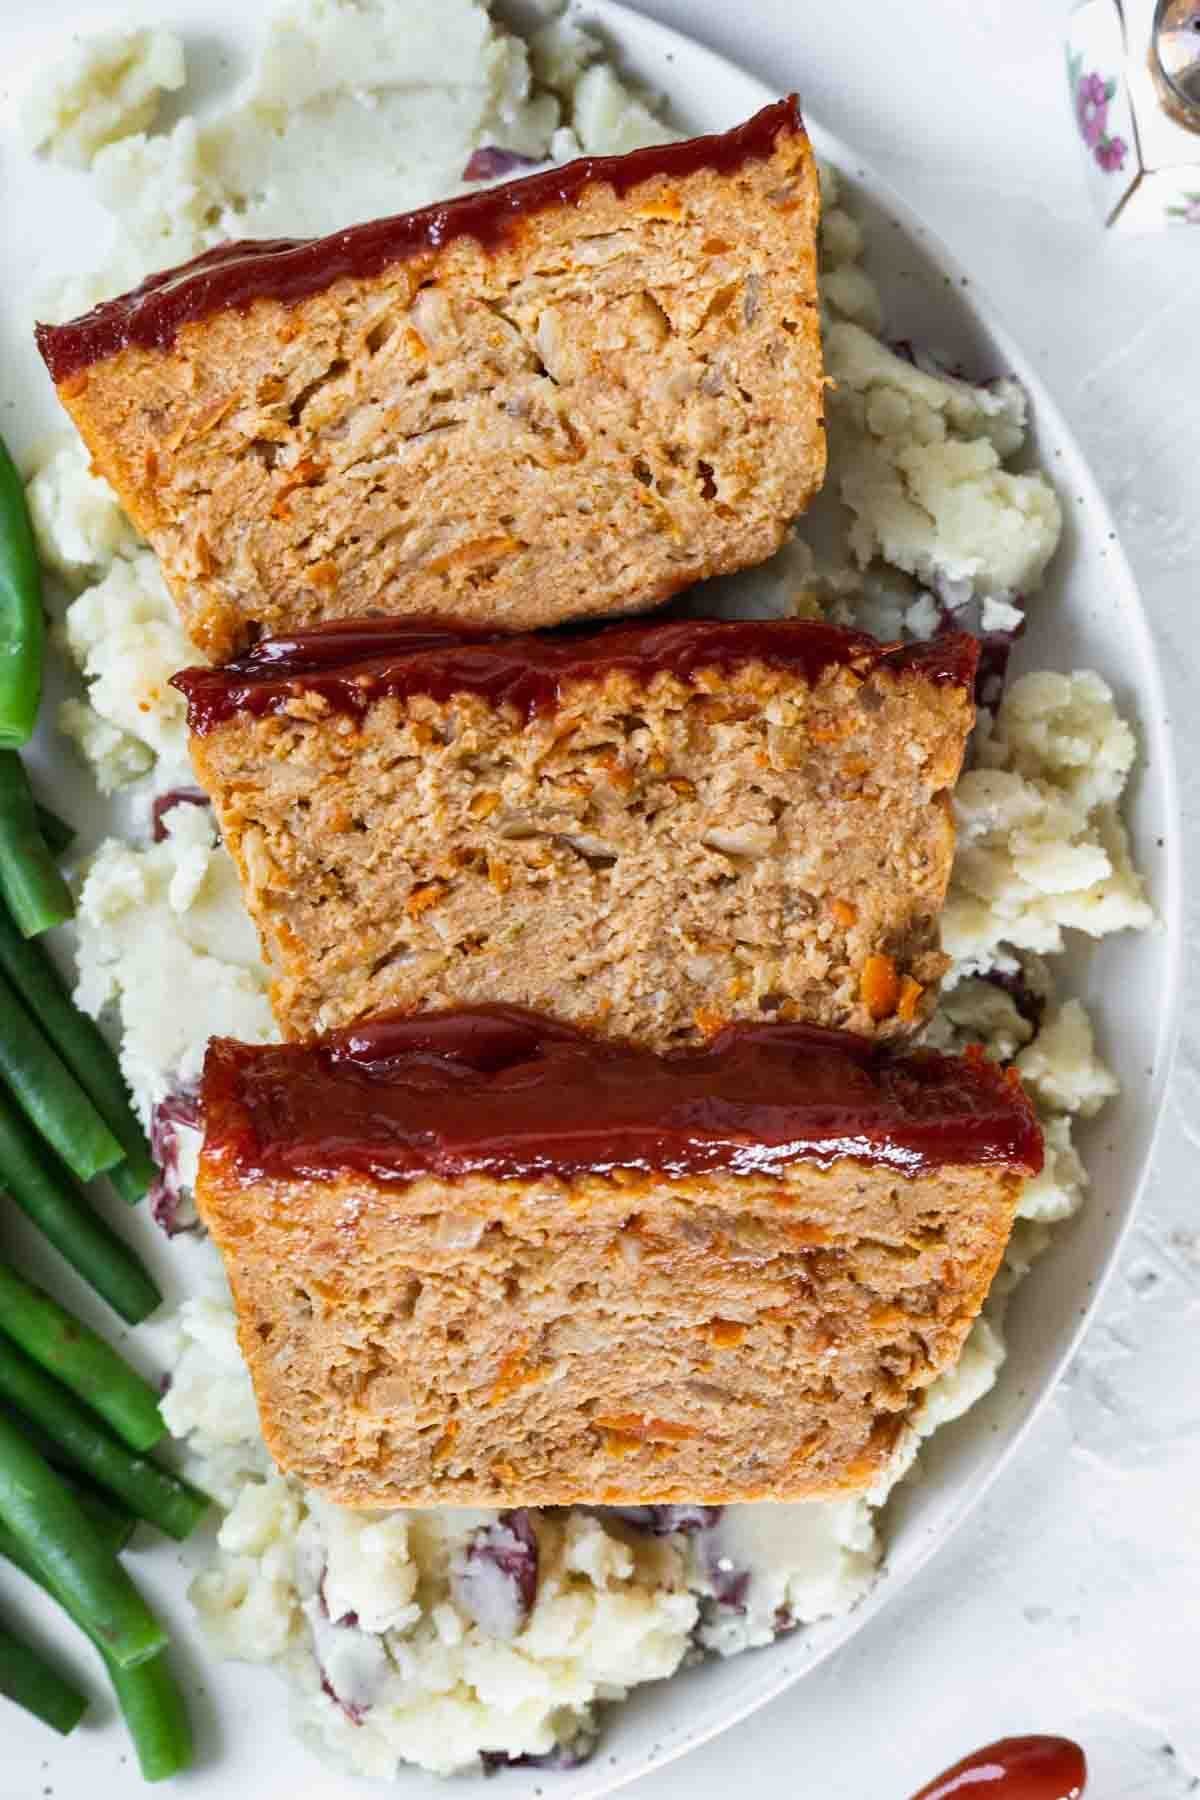 A closeup view of ground chicken meatloaf on a dinner plate with green beans and mashed potatoes.